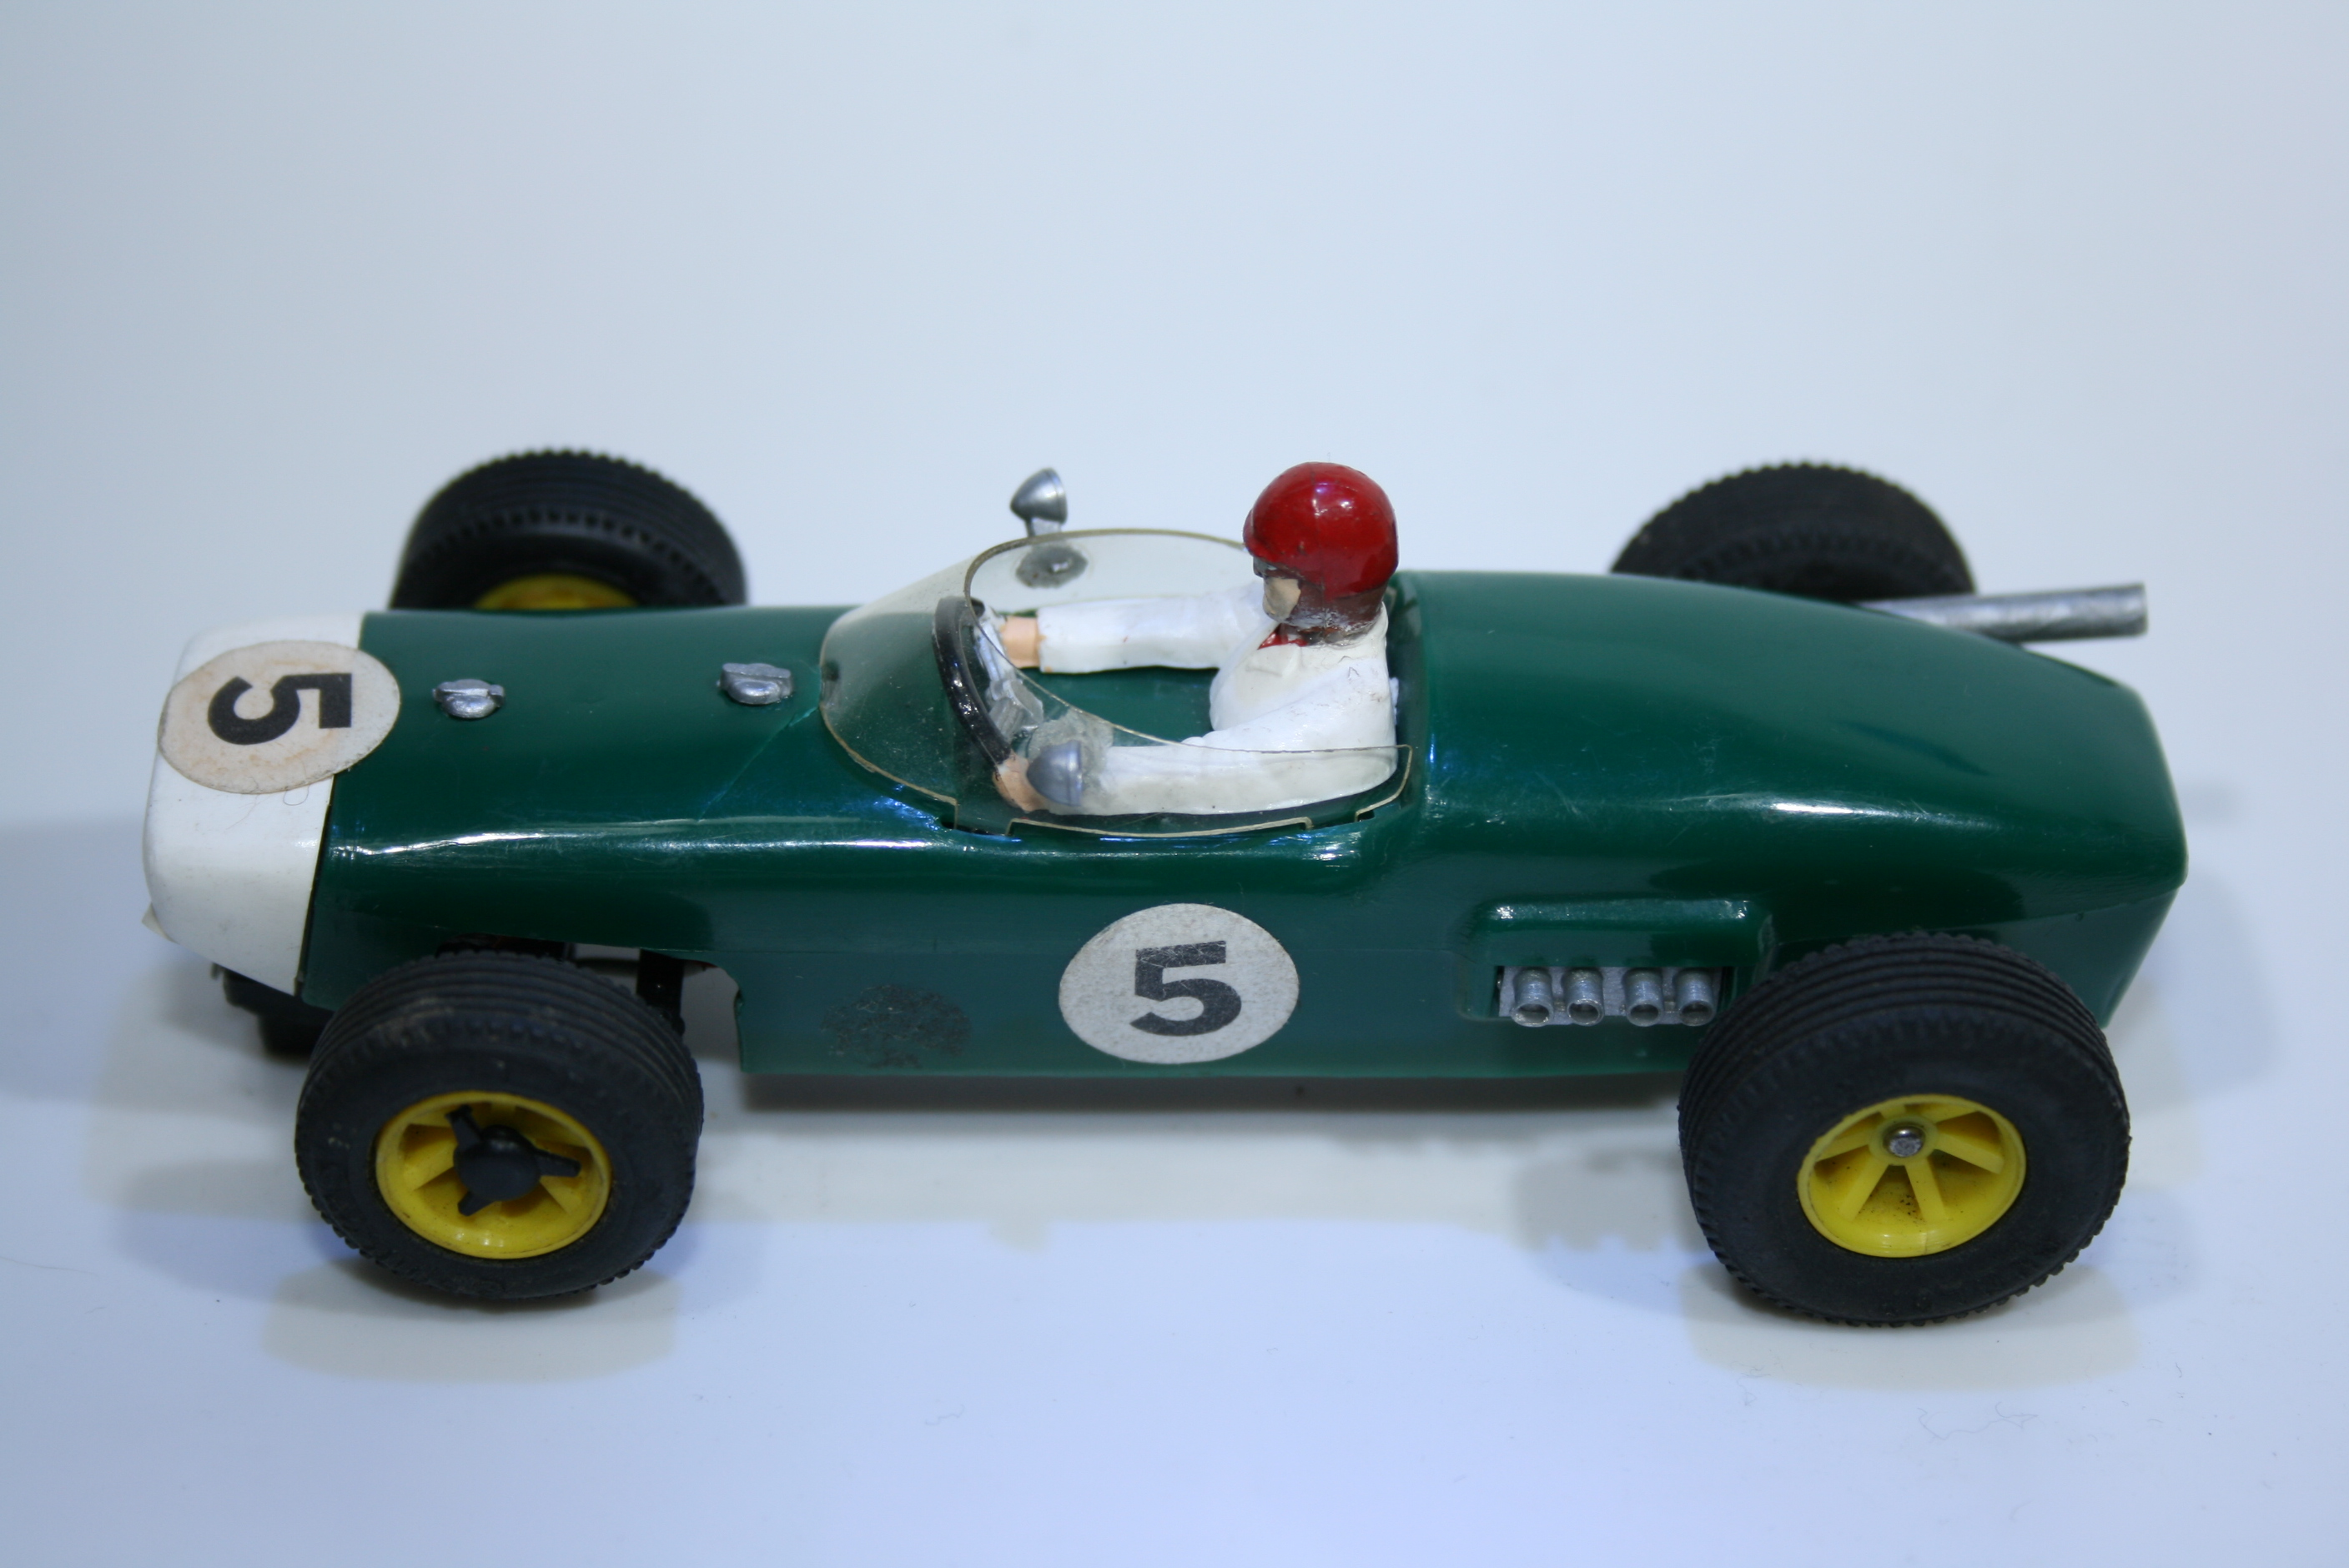 509 Lotus 18 1960 J Surtees VIP R61 1961-68